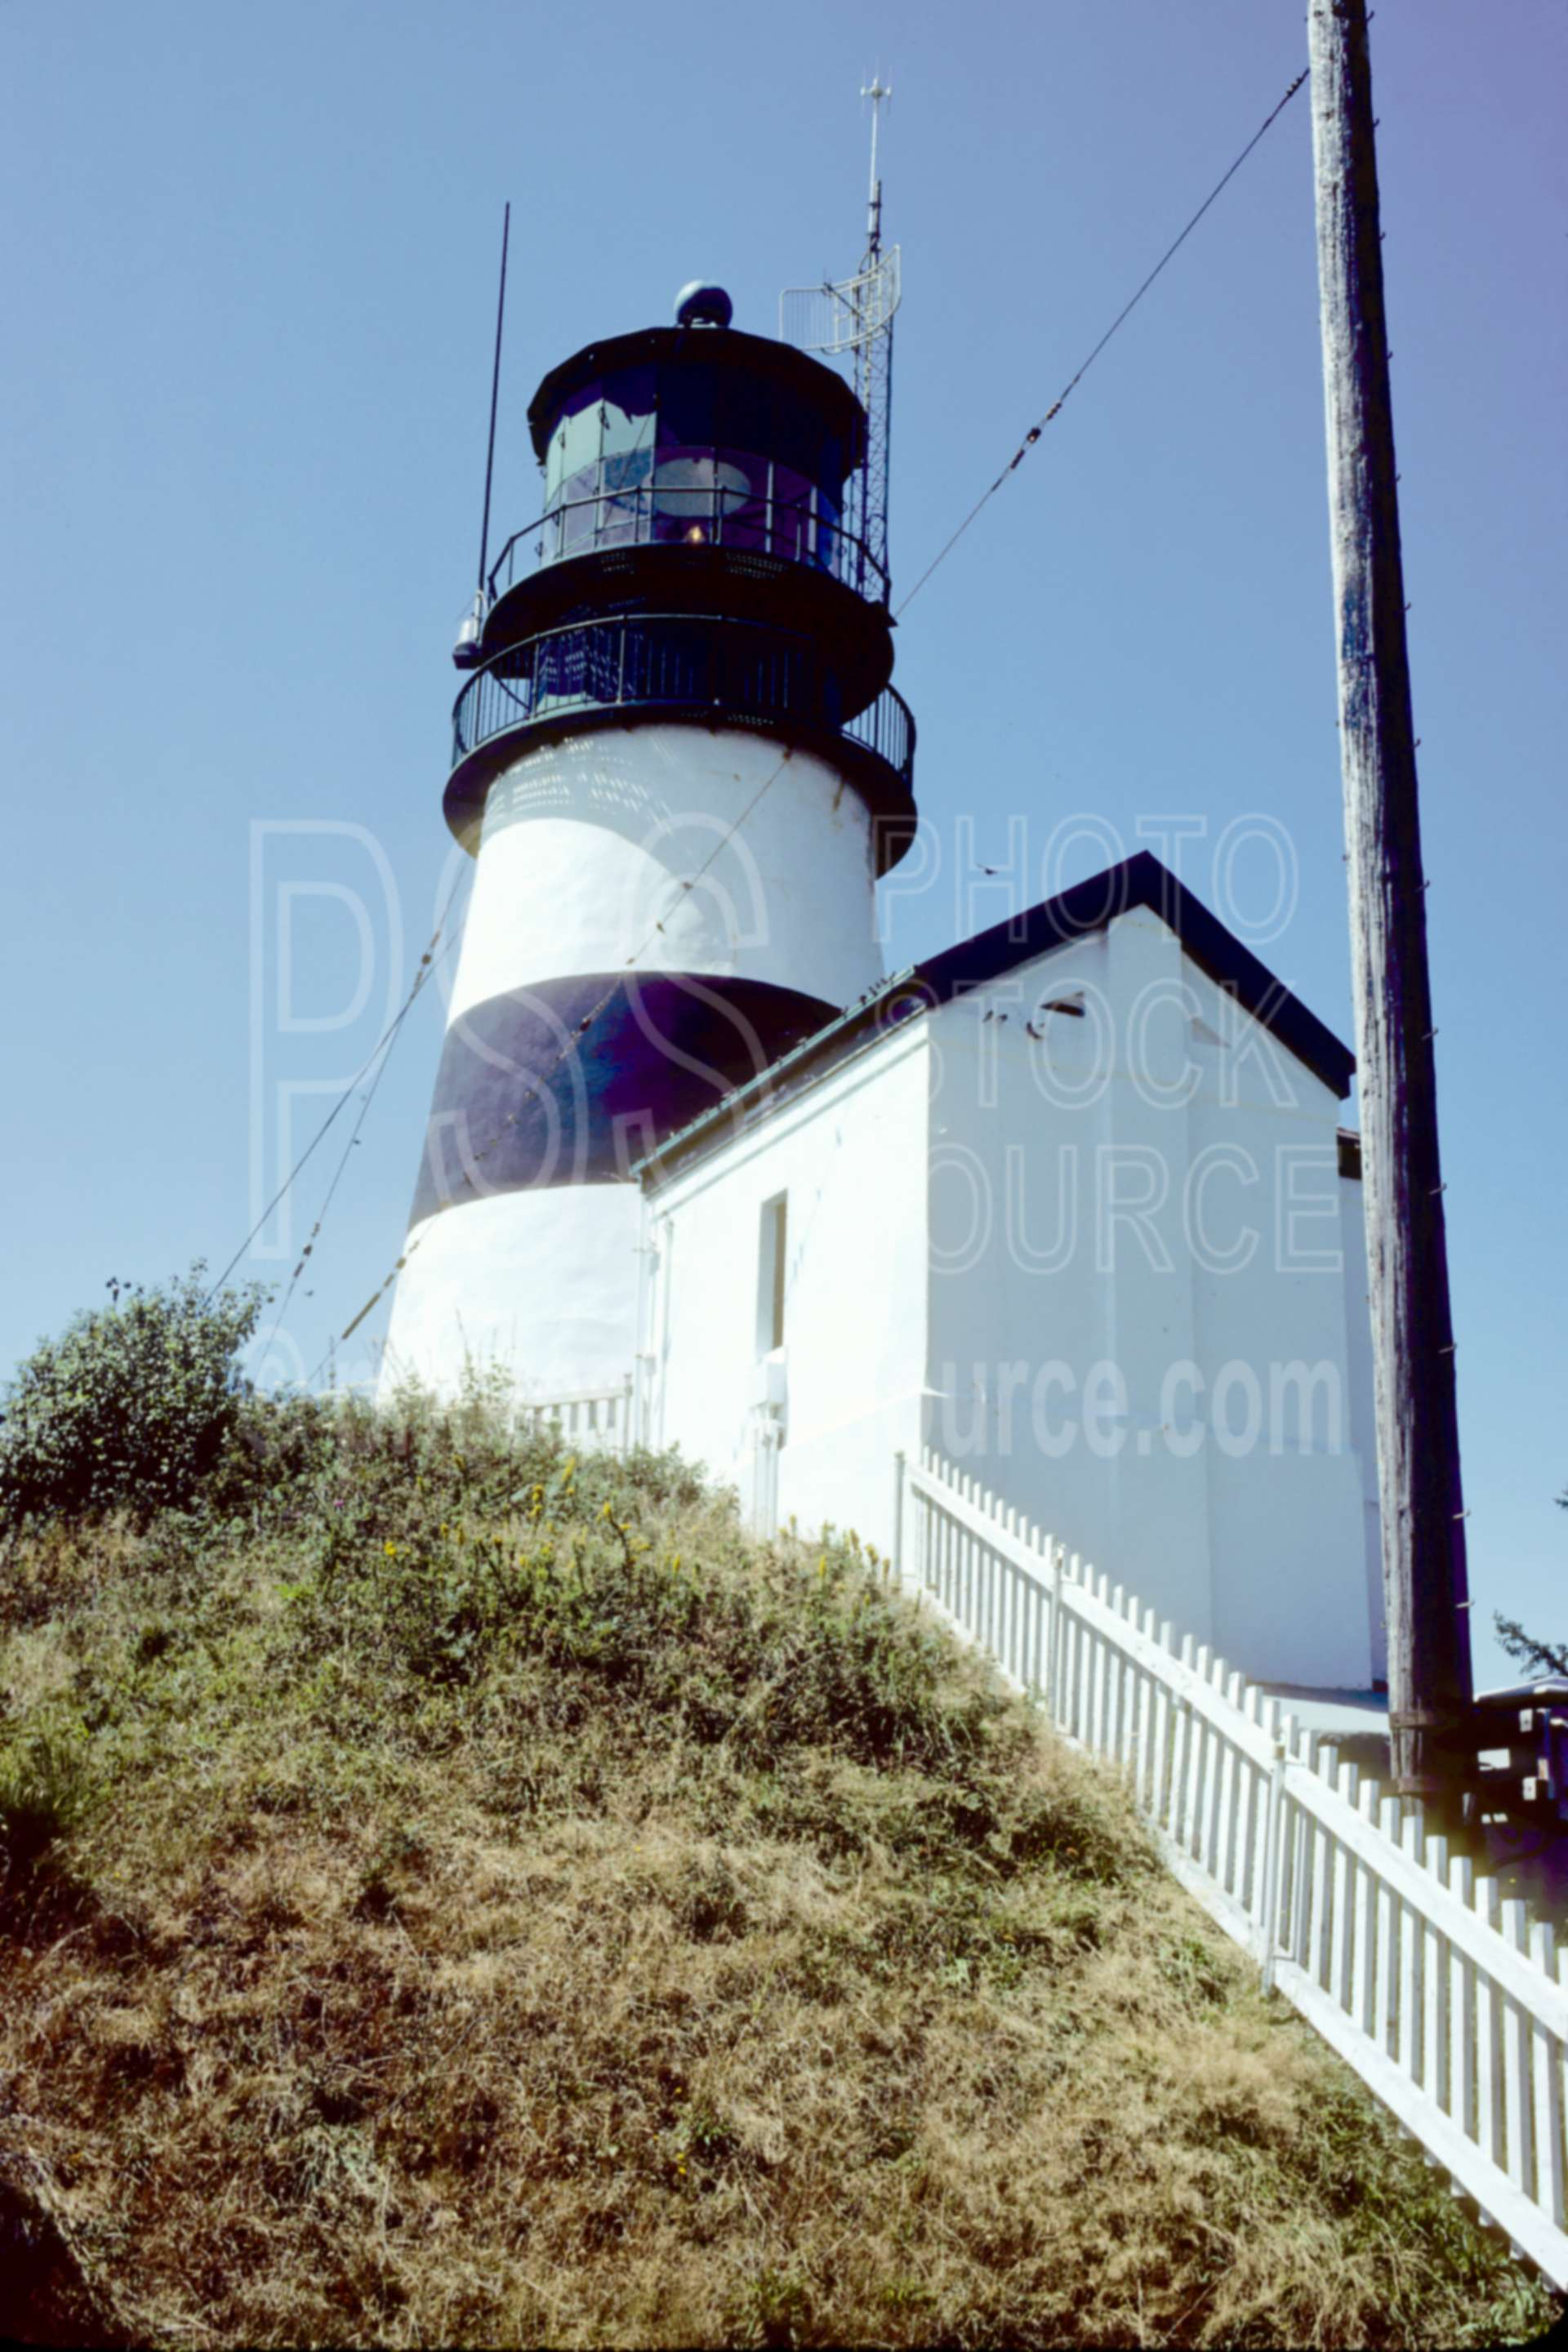 Cape Disappointment Light,cape disappointment,cape disappointment lighthouse,usas,nature,lighthouses